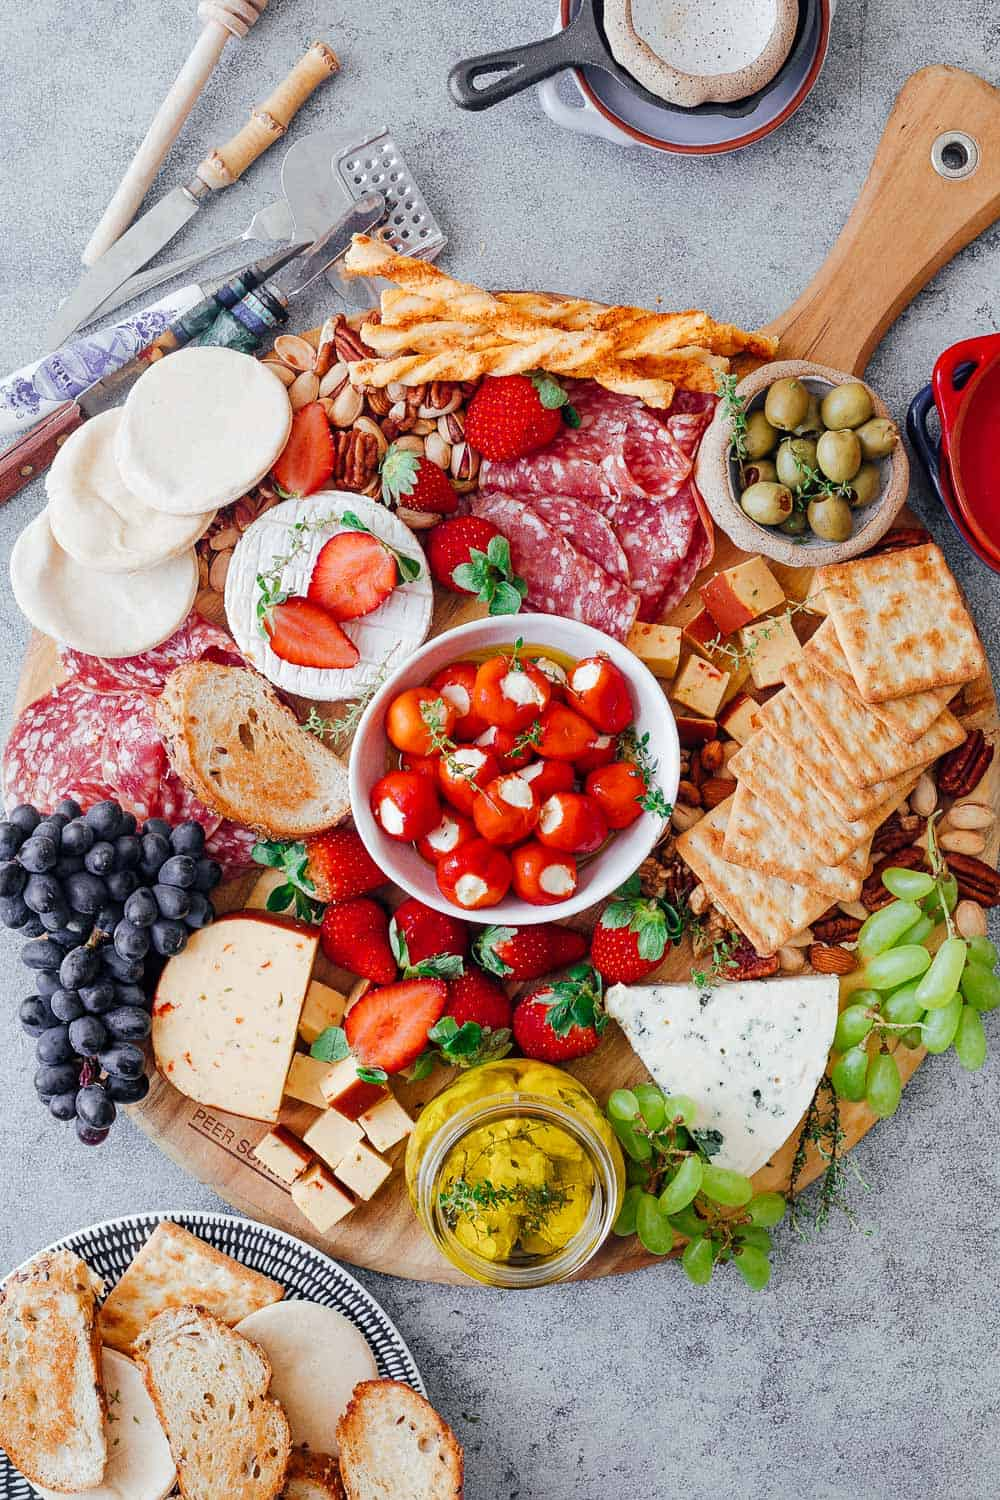 How-to-make-the-Ultimate-Wine-and-Cheese-Board-on-a-budget-8.jpg